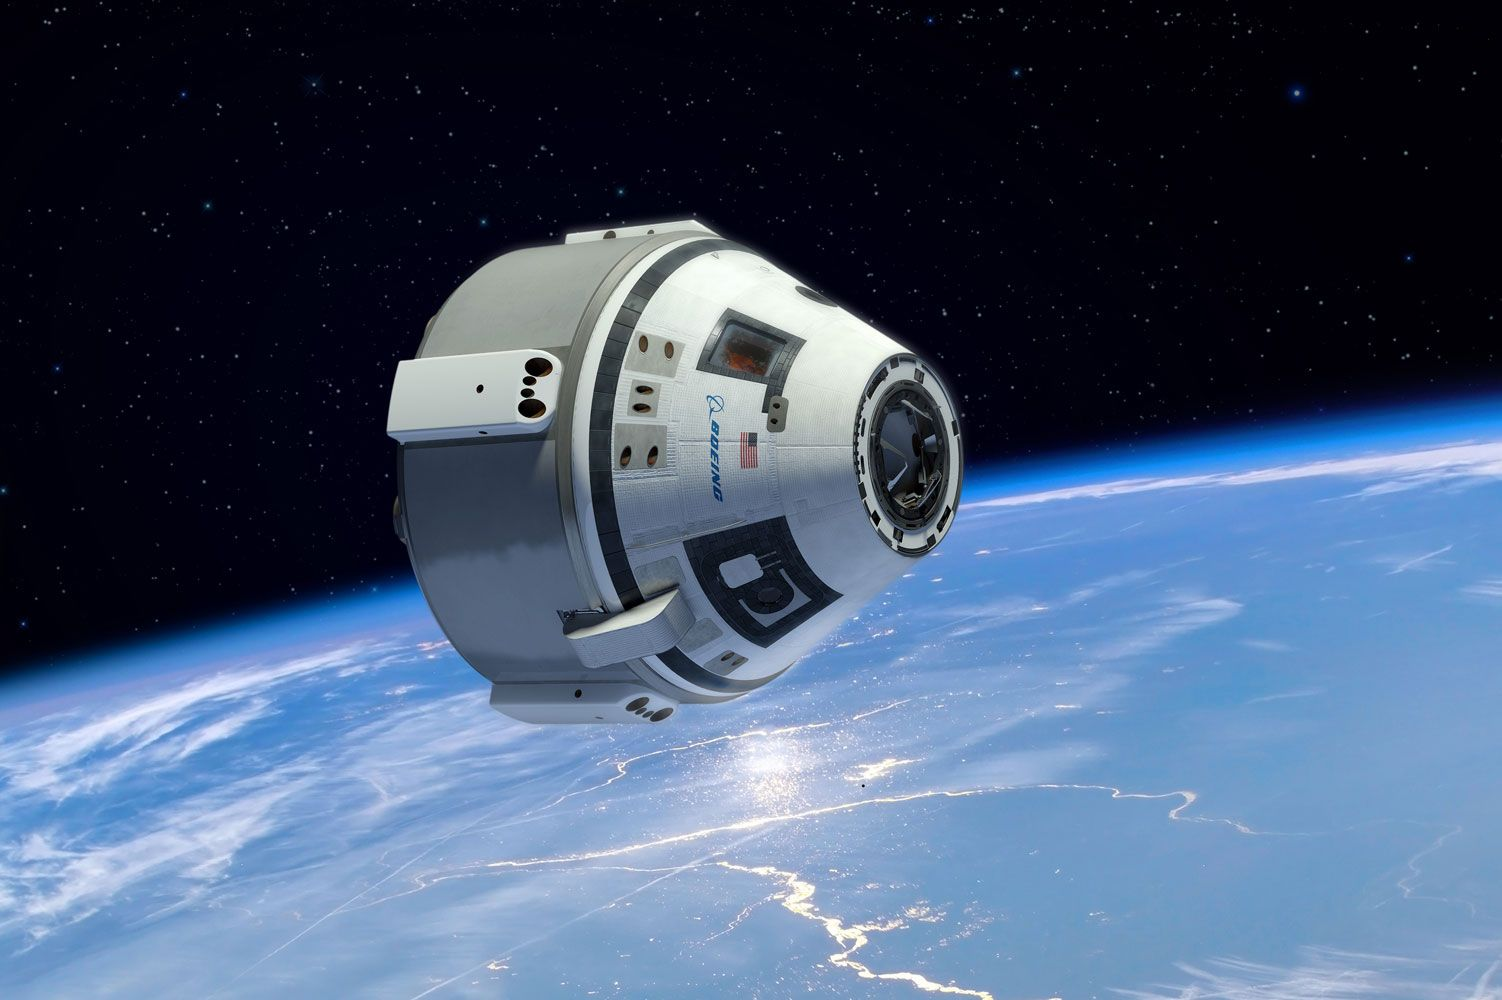 http://images.techtimes.com/data/images/full/15679/illustration-of-boeings-cst-100.jpg